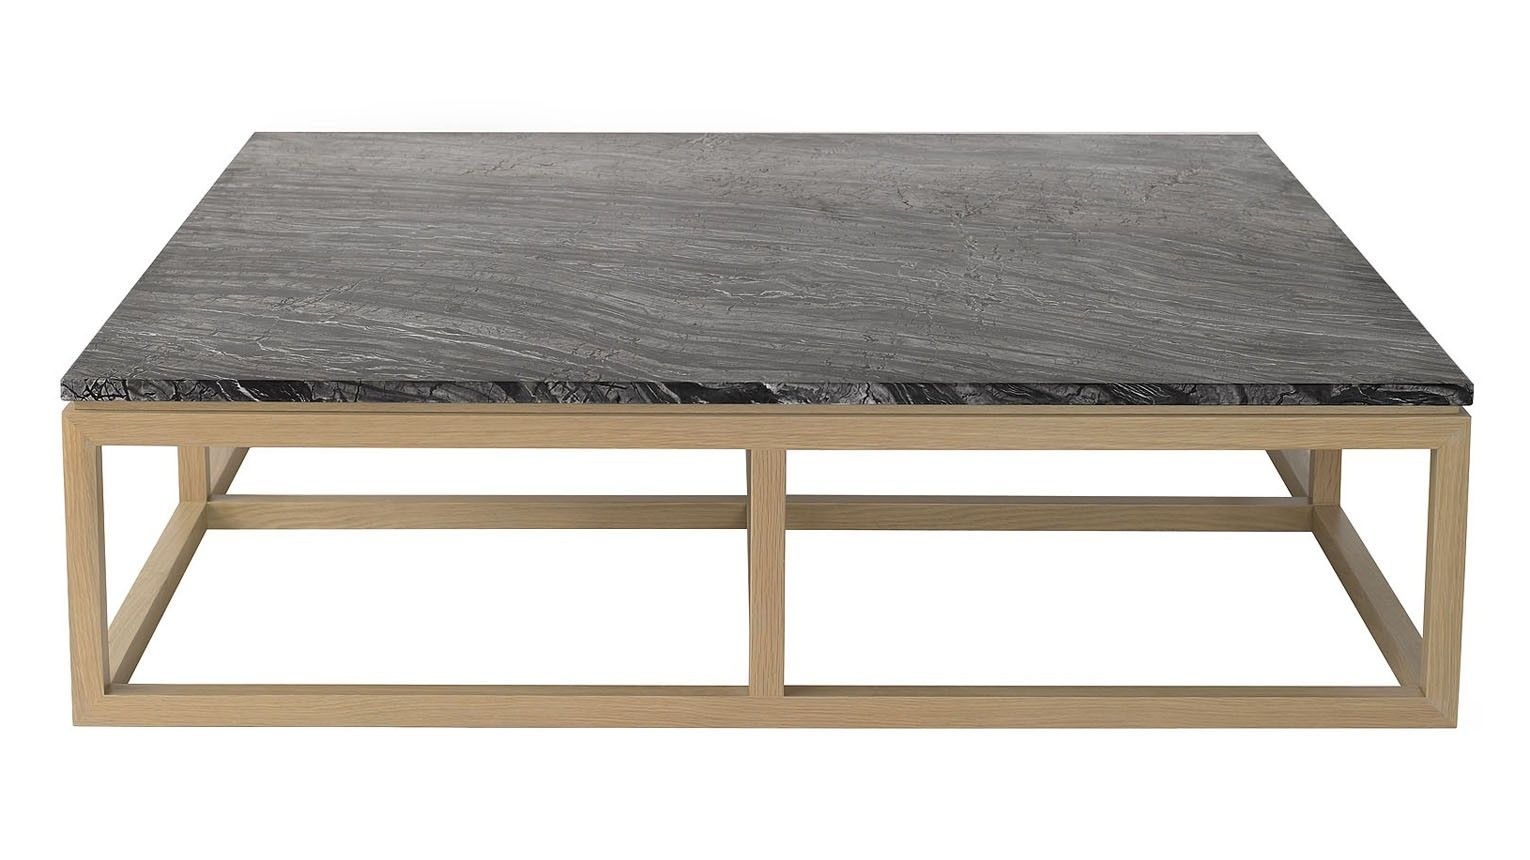 Zuster Zuster Furniture Echo Coffee Table Furniture Coffee Table Buy Home Furniture [ 860 x 1530 Pixel ]